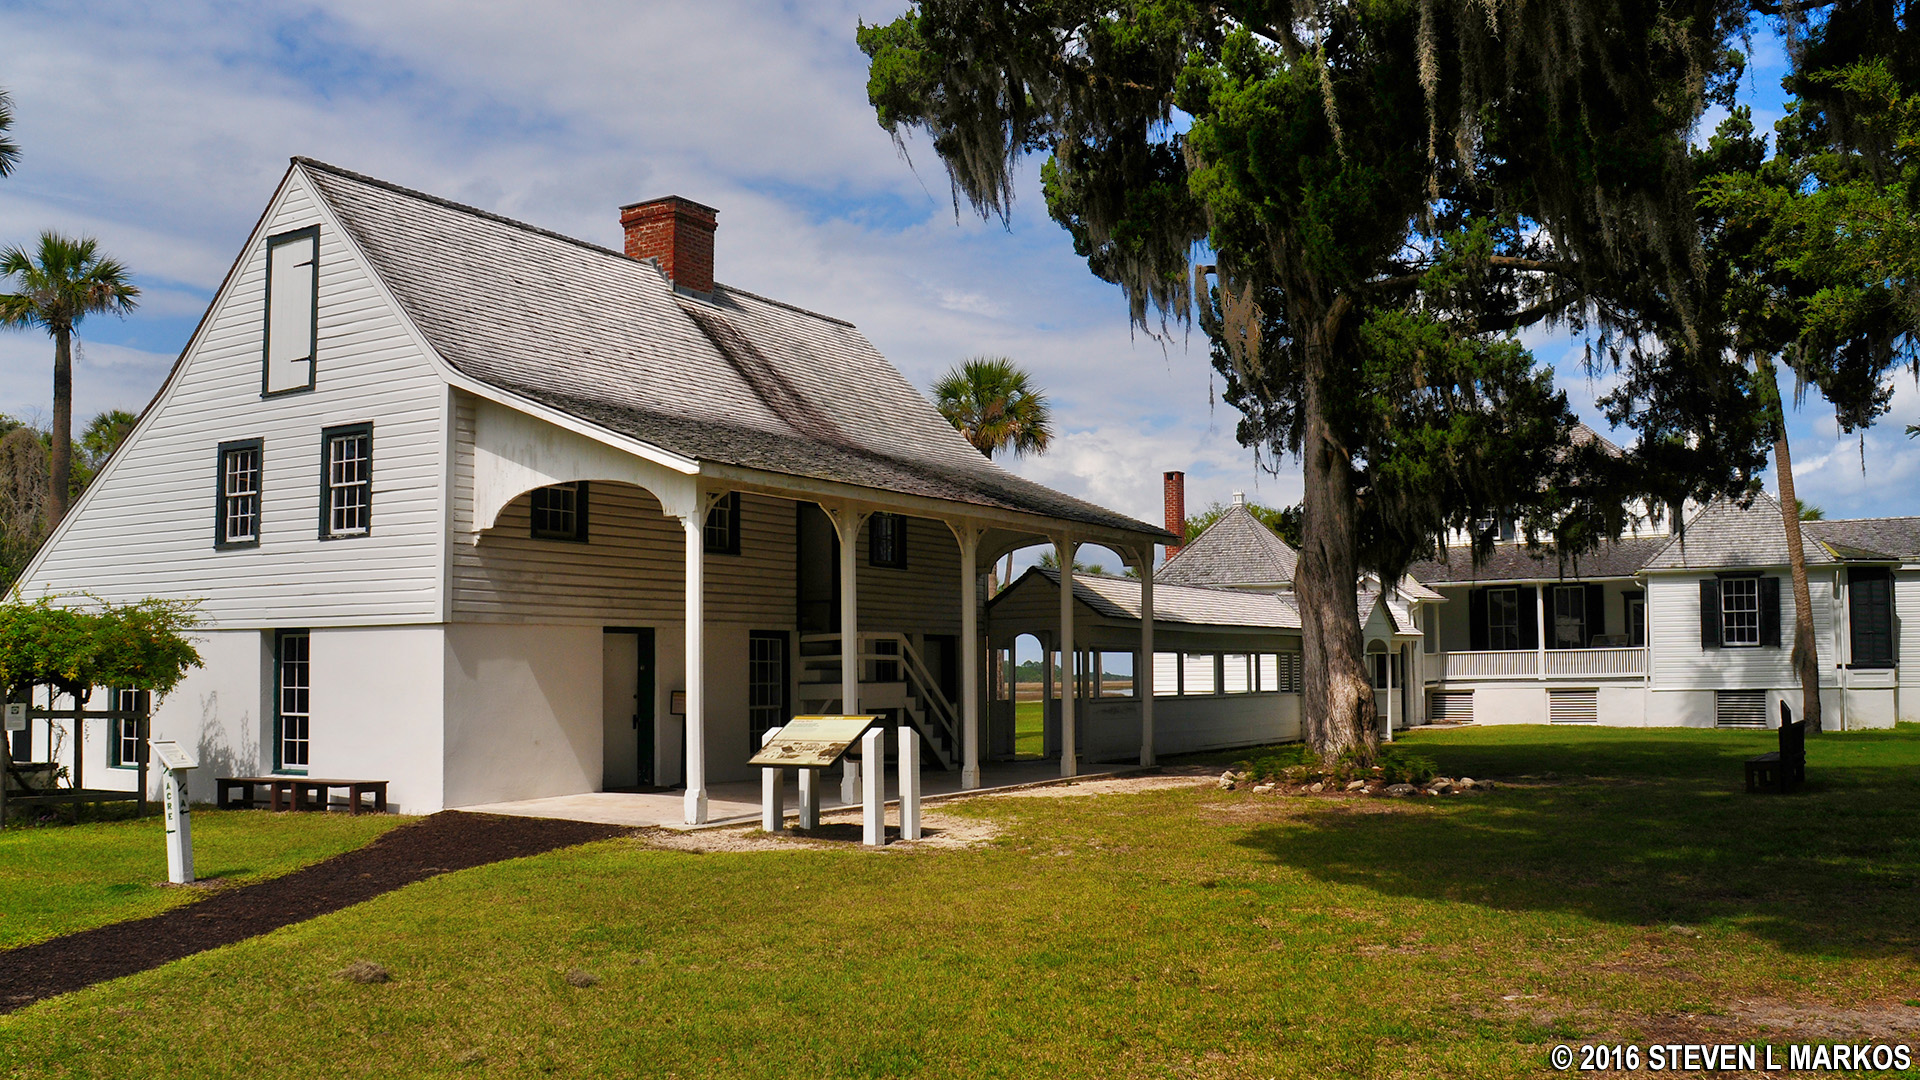 Plantation Kitchen House timucuan ecological and historic preserve | kingsley plantation